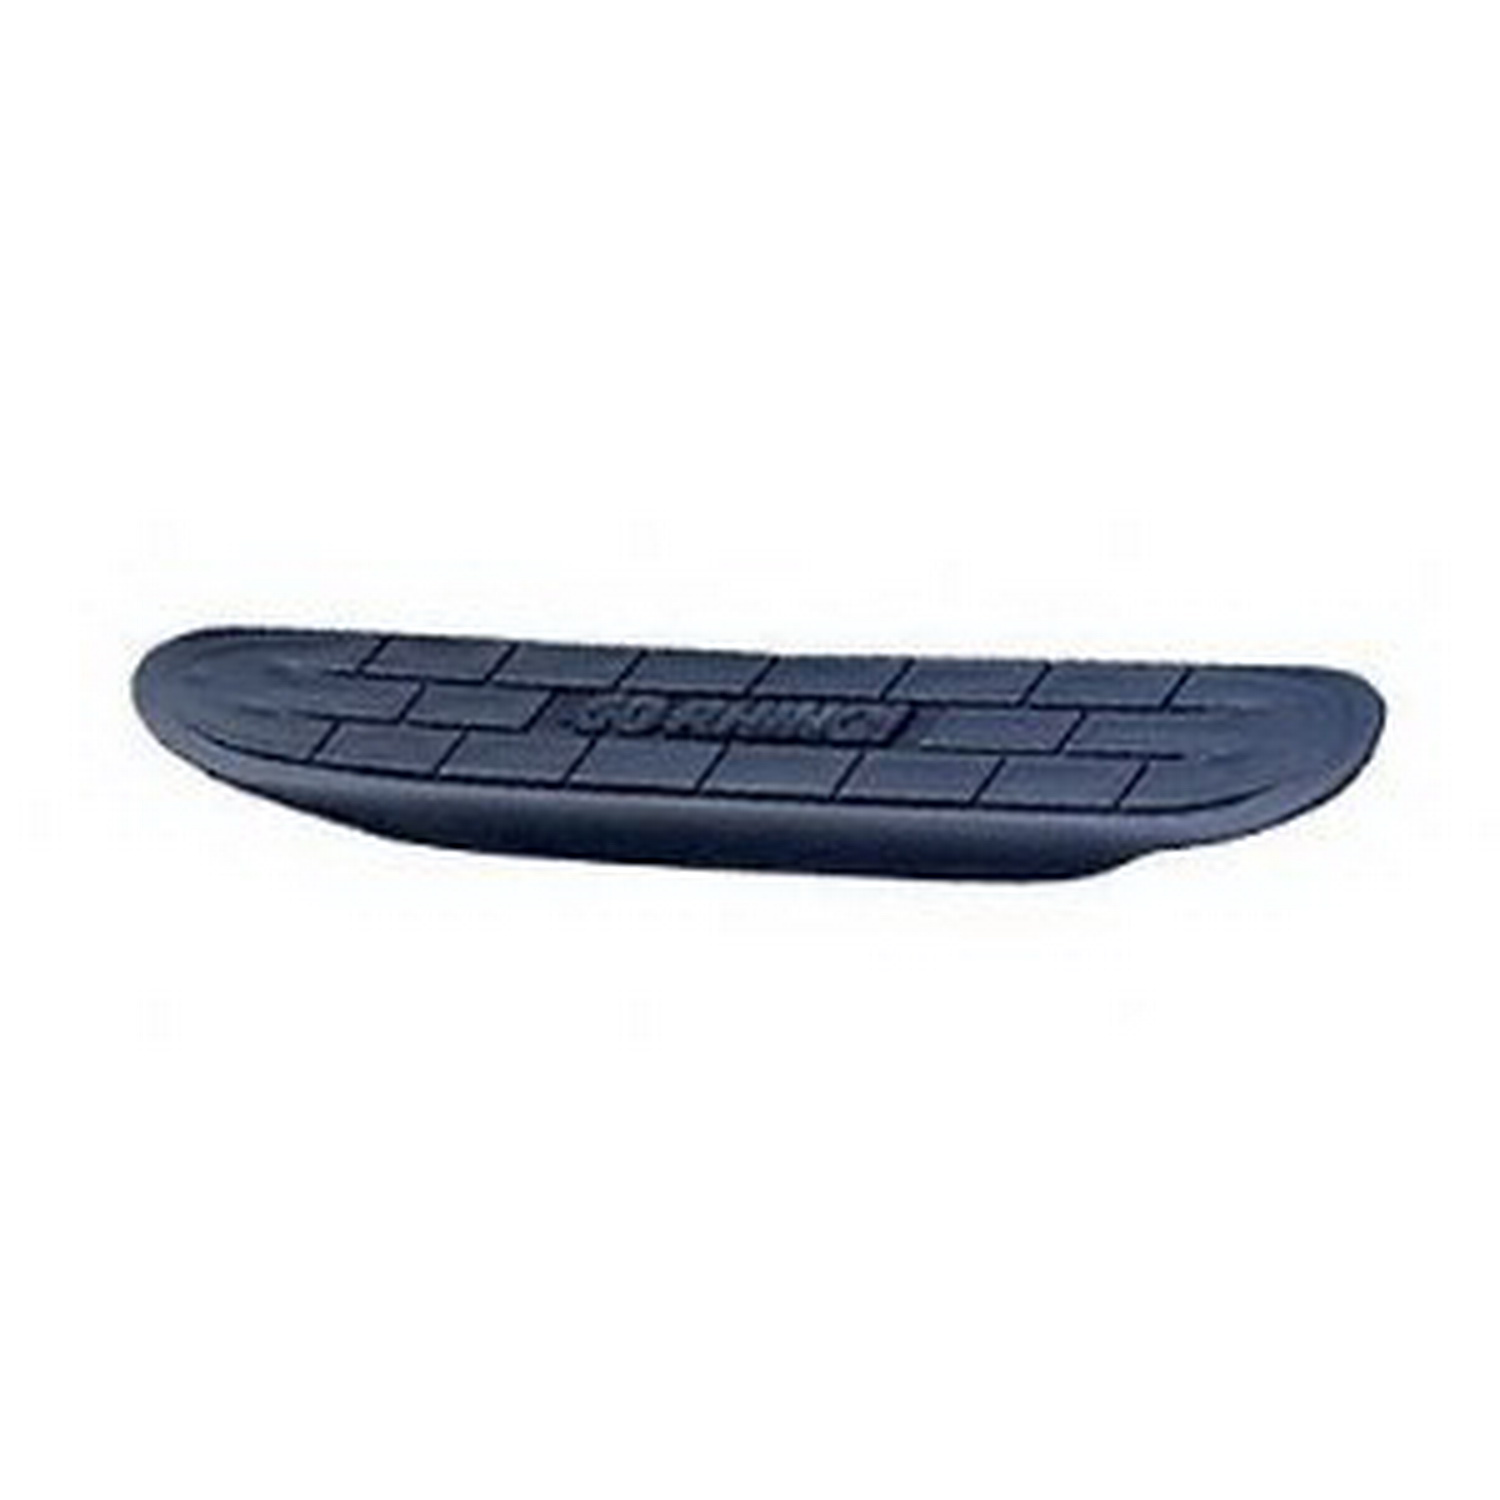 SPD-3601 Go Rhino Nerf Bar Pad For D3 Dominator Steps